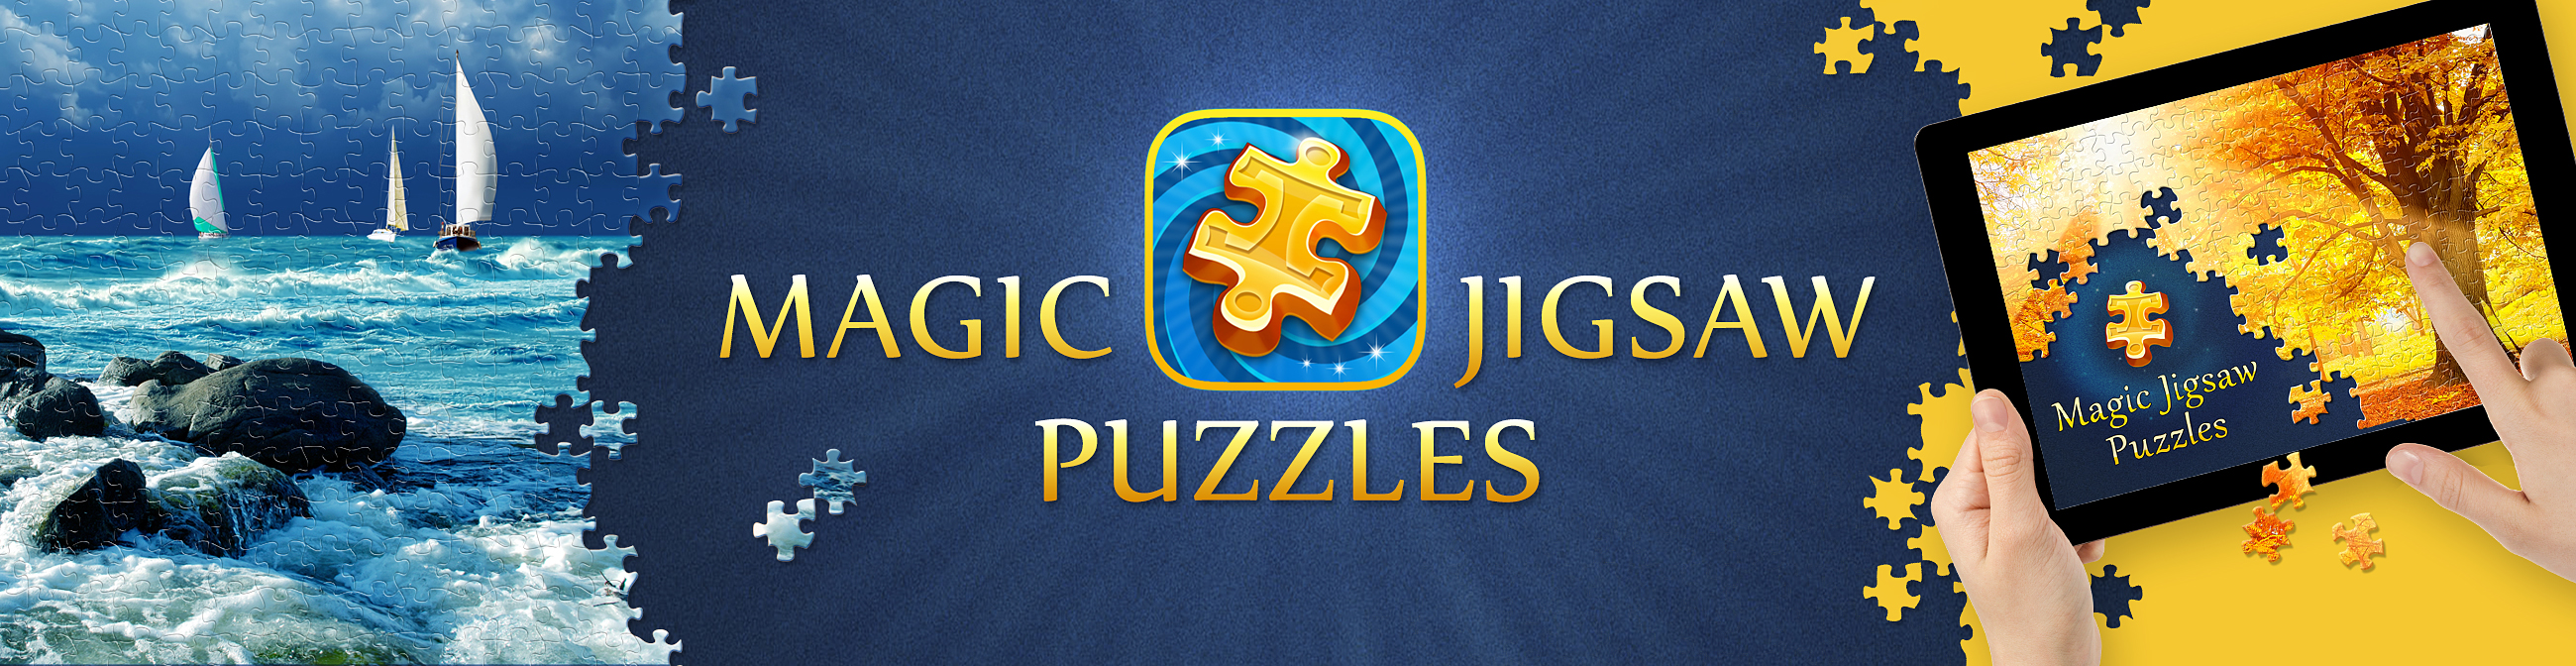 Magic jigsaw puzzles updates it 39 s app to iphone mom Magic app